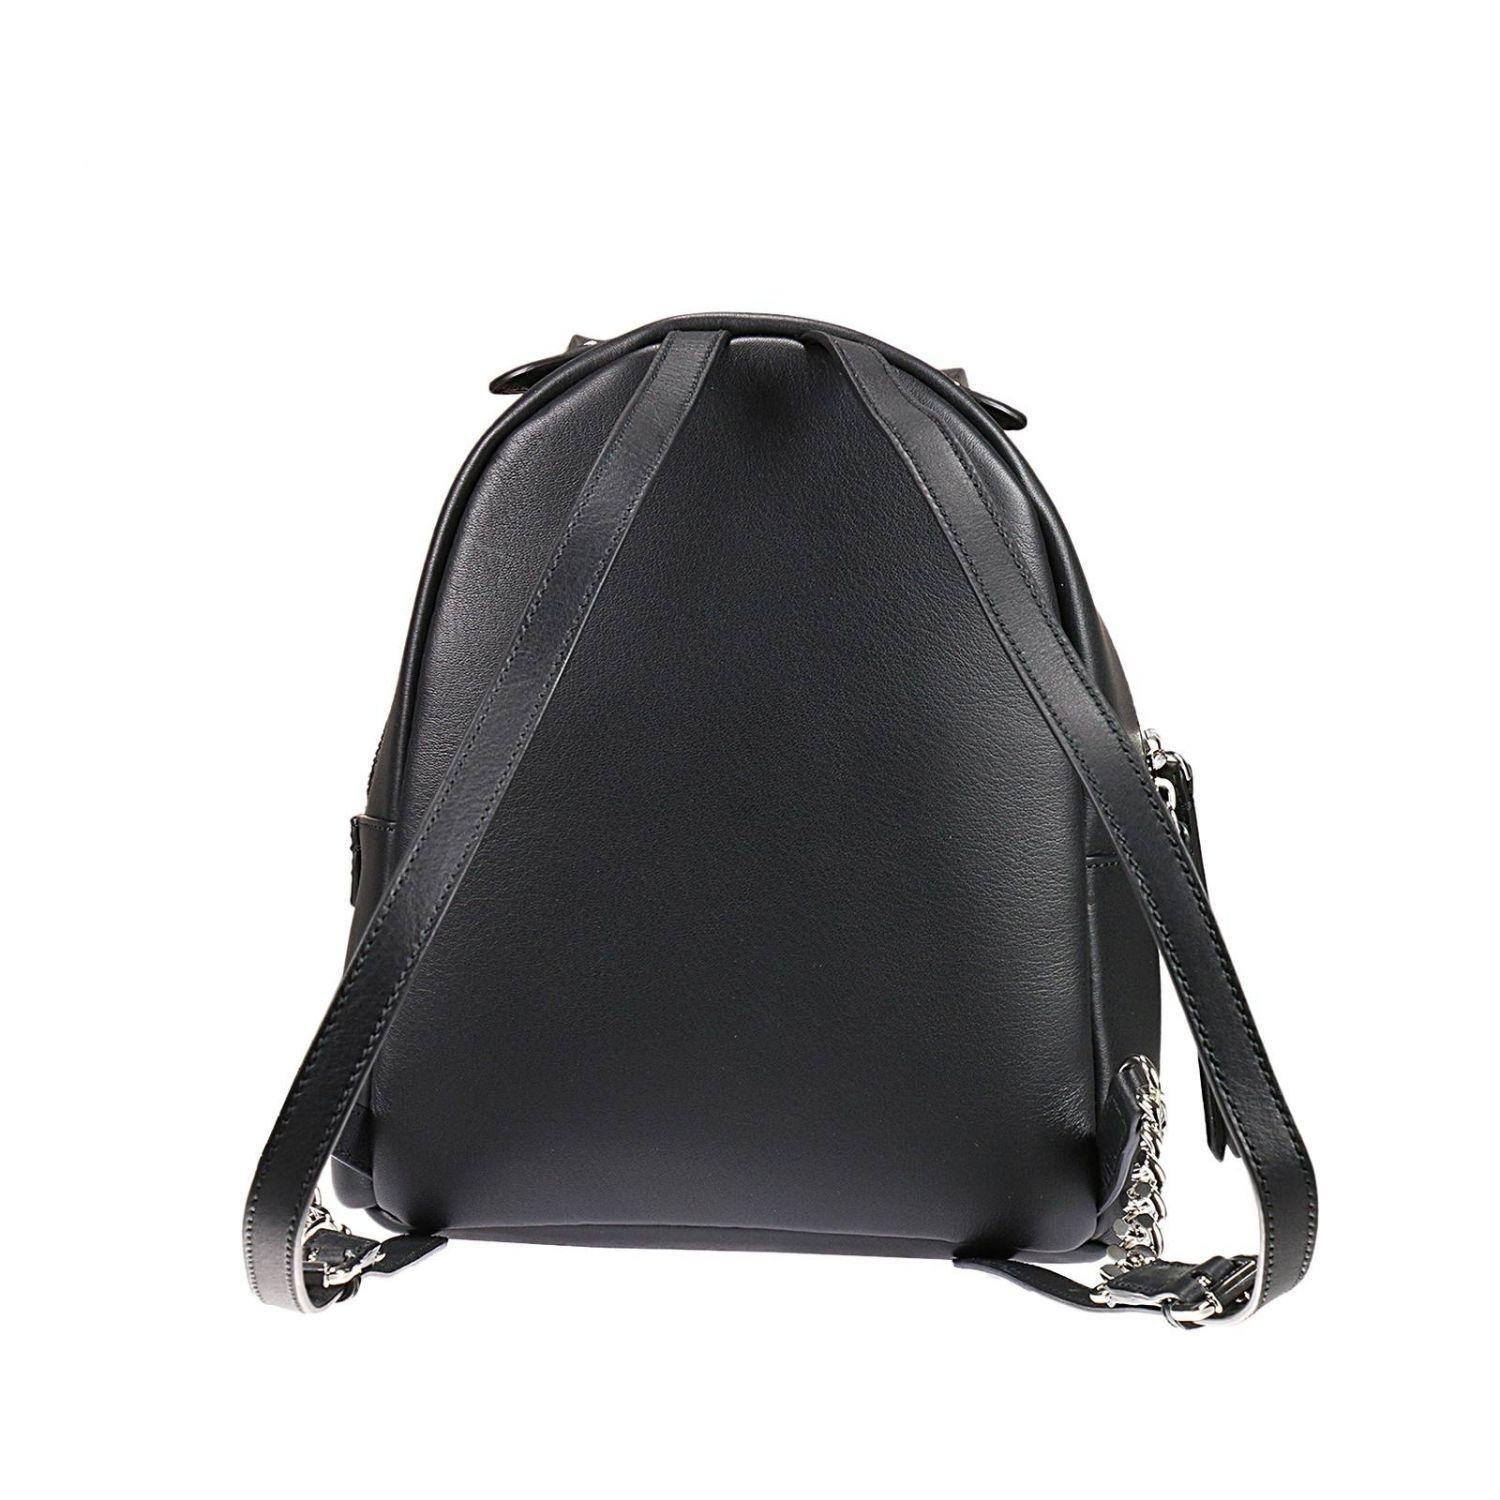 c03c227aa531 Fendi Backpack Black